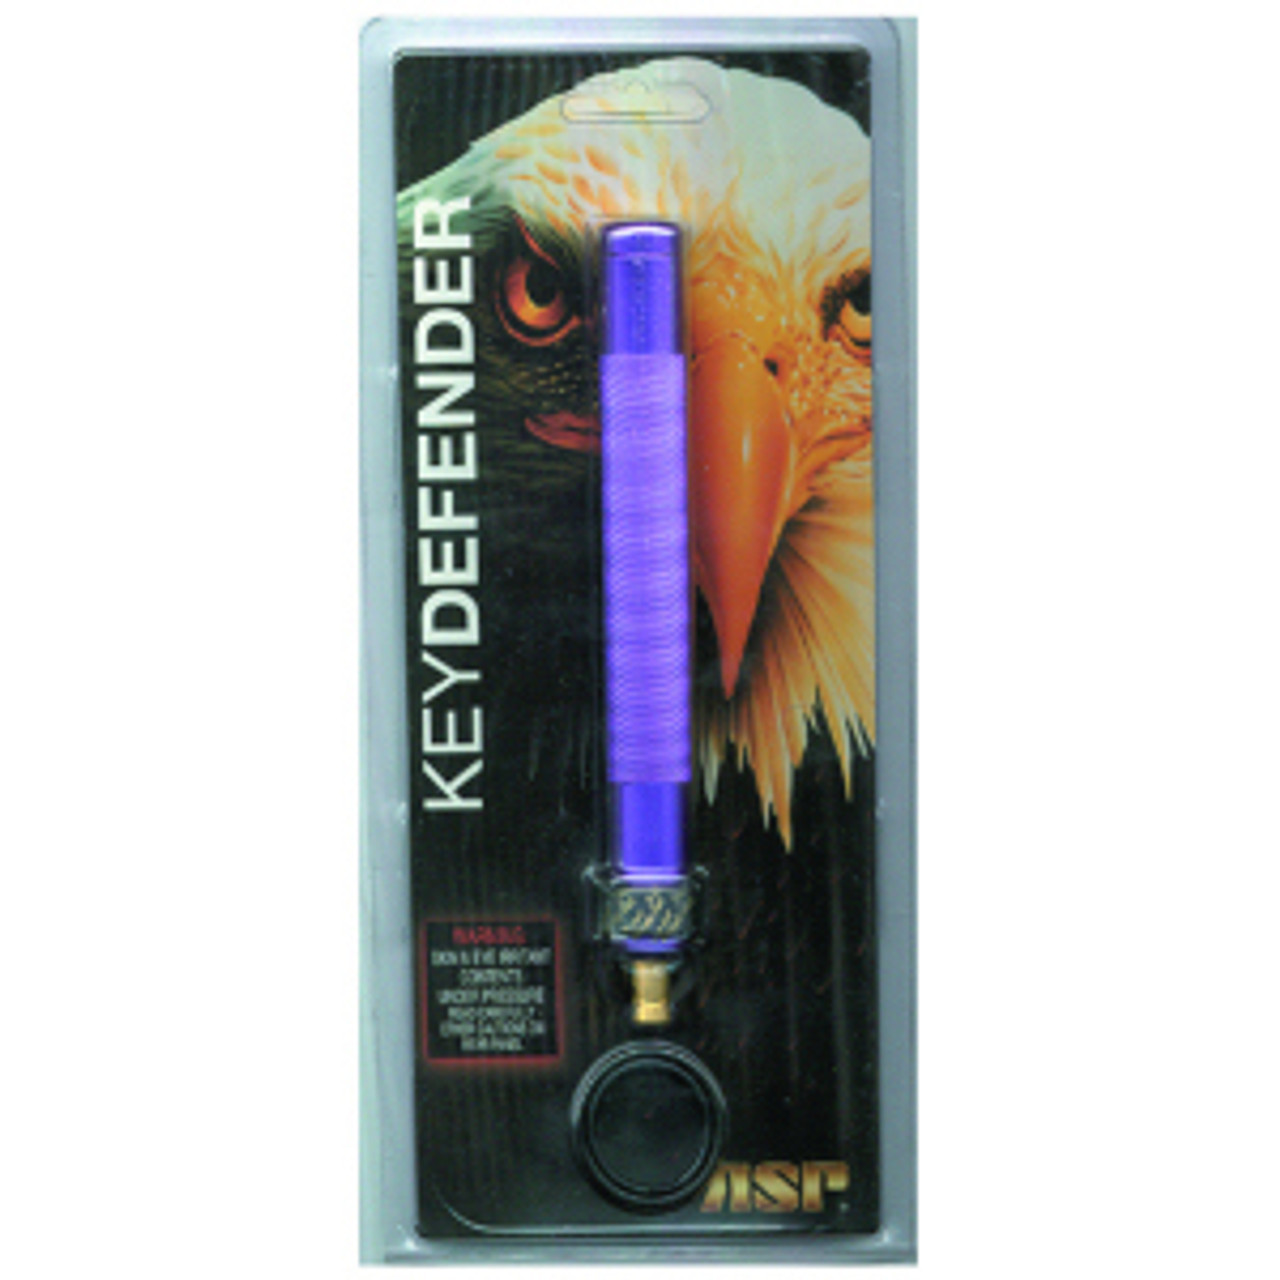 ASP 55151 Key Defender (OC), 6061 T6 Aerospace Aluminum Construction, Violet